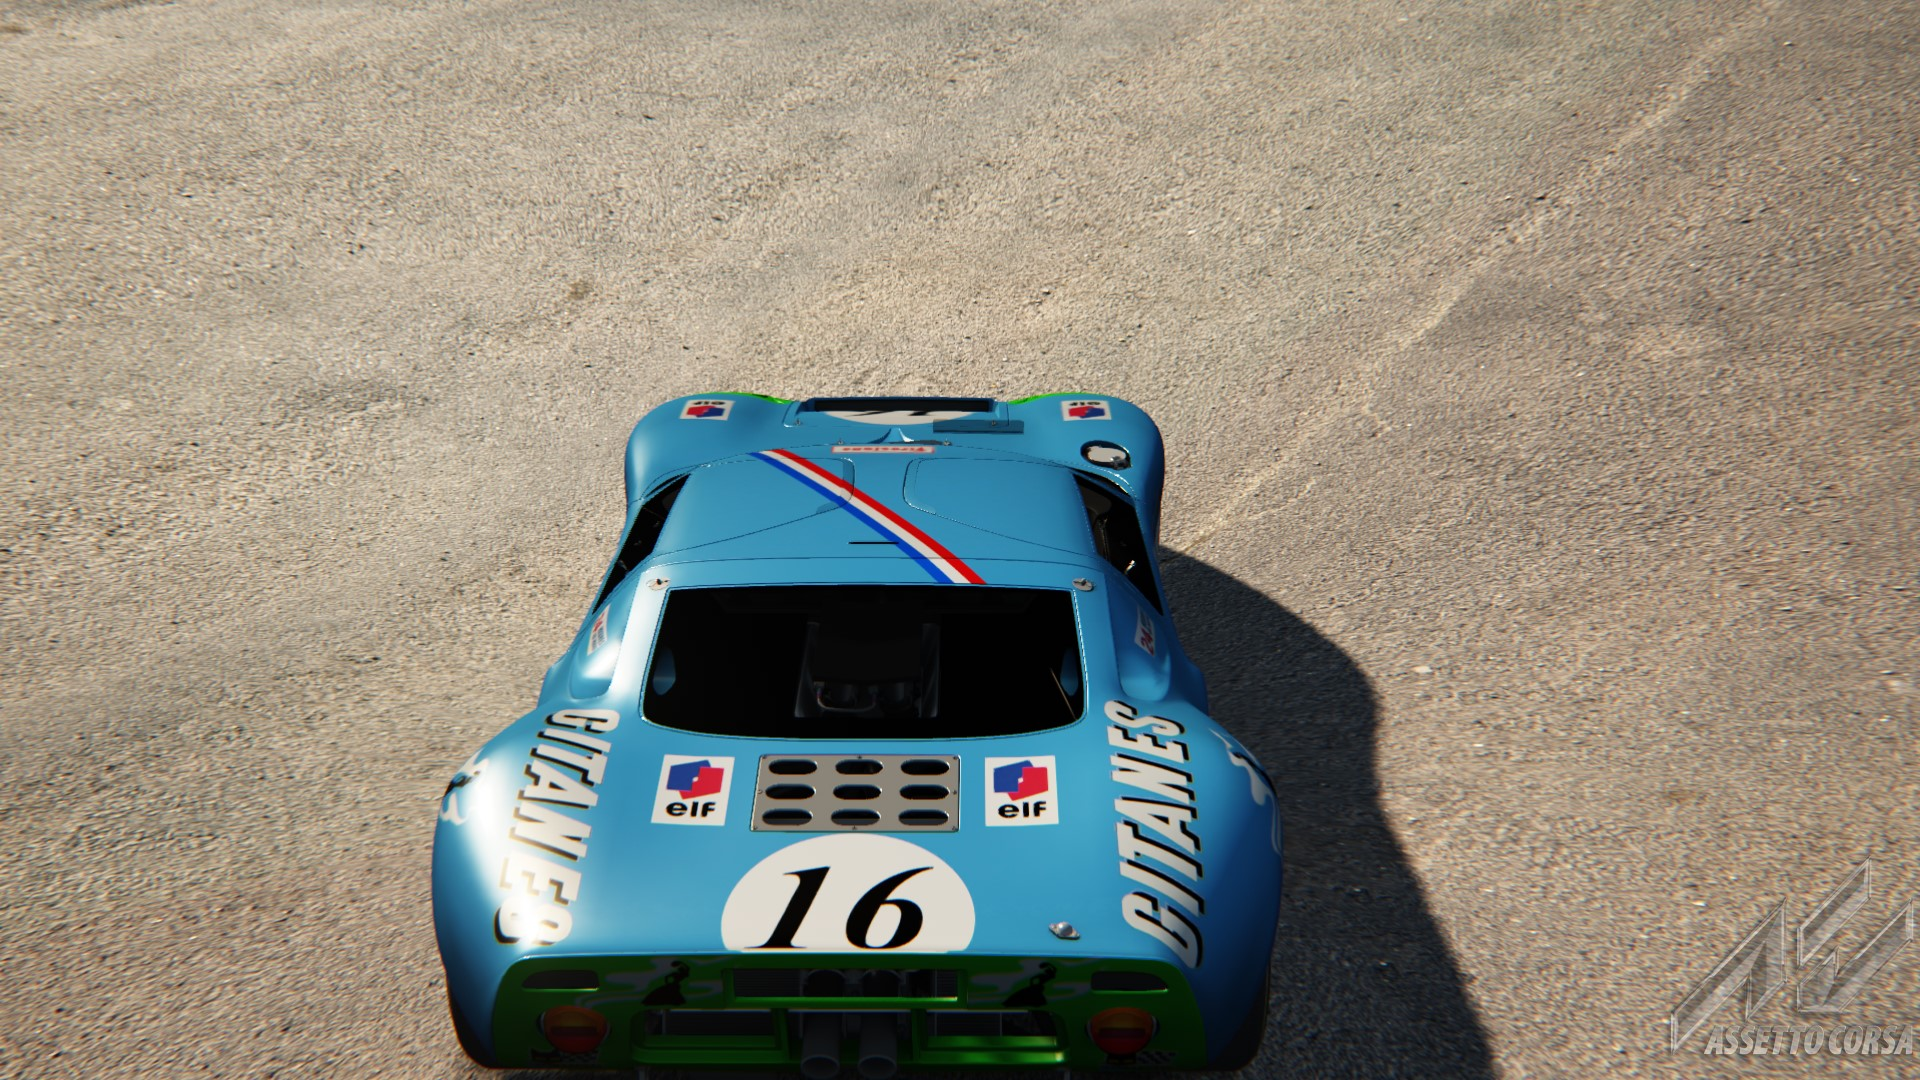 Showroom_ks_ford_gt40_7-10-2015-20-51-52.jpg